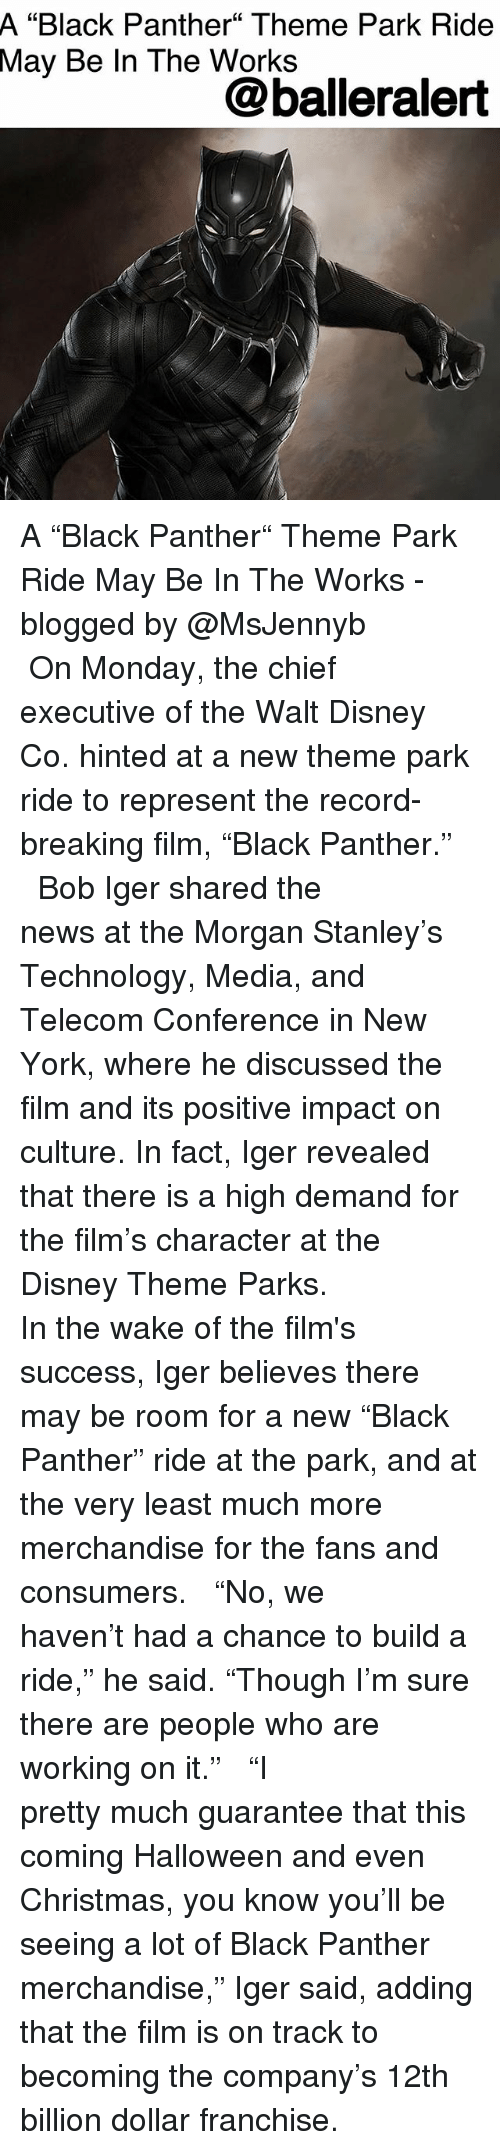 """Christmas, Disney, and Halloween: A  """"Black Panther"""" Theme Park Ride  May  Be In The Works  @balleralert A """"Black Panther"""" Theme Park Ride May Be In The Works - blogged by @MsJennyb ⠀⠀⠀⠀⠀⠀⠀ ⠀⠀⠀⠀⠀⠀⠀ On Monday, the chief executive of the Walt Disney Co. hinted at a new theme park ride to represent the record-breaking film, """"Black Panther."""" ⠀⠀⠀⠀⠀⠀⠀ ⠀⠀⠀⠀⠀⠀⠀ Bob Iger shared the news at the Morgan Stanley's Technology, Media, and Telecom Conference in New York, where he discussed the film and its positive impact on culture. In fact, Iger revealed that there is a high demand for the film's character at the Disney Theme Parks. ⠀⠀⠀⠀⠀⠀⠀ ⠀⠀⠀⠀⠀⠀⠀ In the wake of the film's success, Iger believes there may be room for a new """"Black Panther"""" ride at the park, and at the very least much more merchandise for the fans and consumers. ⠀⠀⠀⠀⠀⠀⠀ ⠀⠀⠀⠀⠀⠀⠀ """"No, we haven't had a chance to build a ride,"""" he said. """"Though I'm sure there are people who are working on it."""" ⠀⠀⠀⠀⠀⠀⠀ ⠀⠀⠀⠀⠀⠀⠀ """"I pretty much guarantee that this coming Halloween and even Christmas, you know you'll be seeing a lot of Black Panther merchandise,"""" Iger said, adding that the film is on track to becoming the company's 12th billion dollar franchise."""